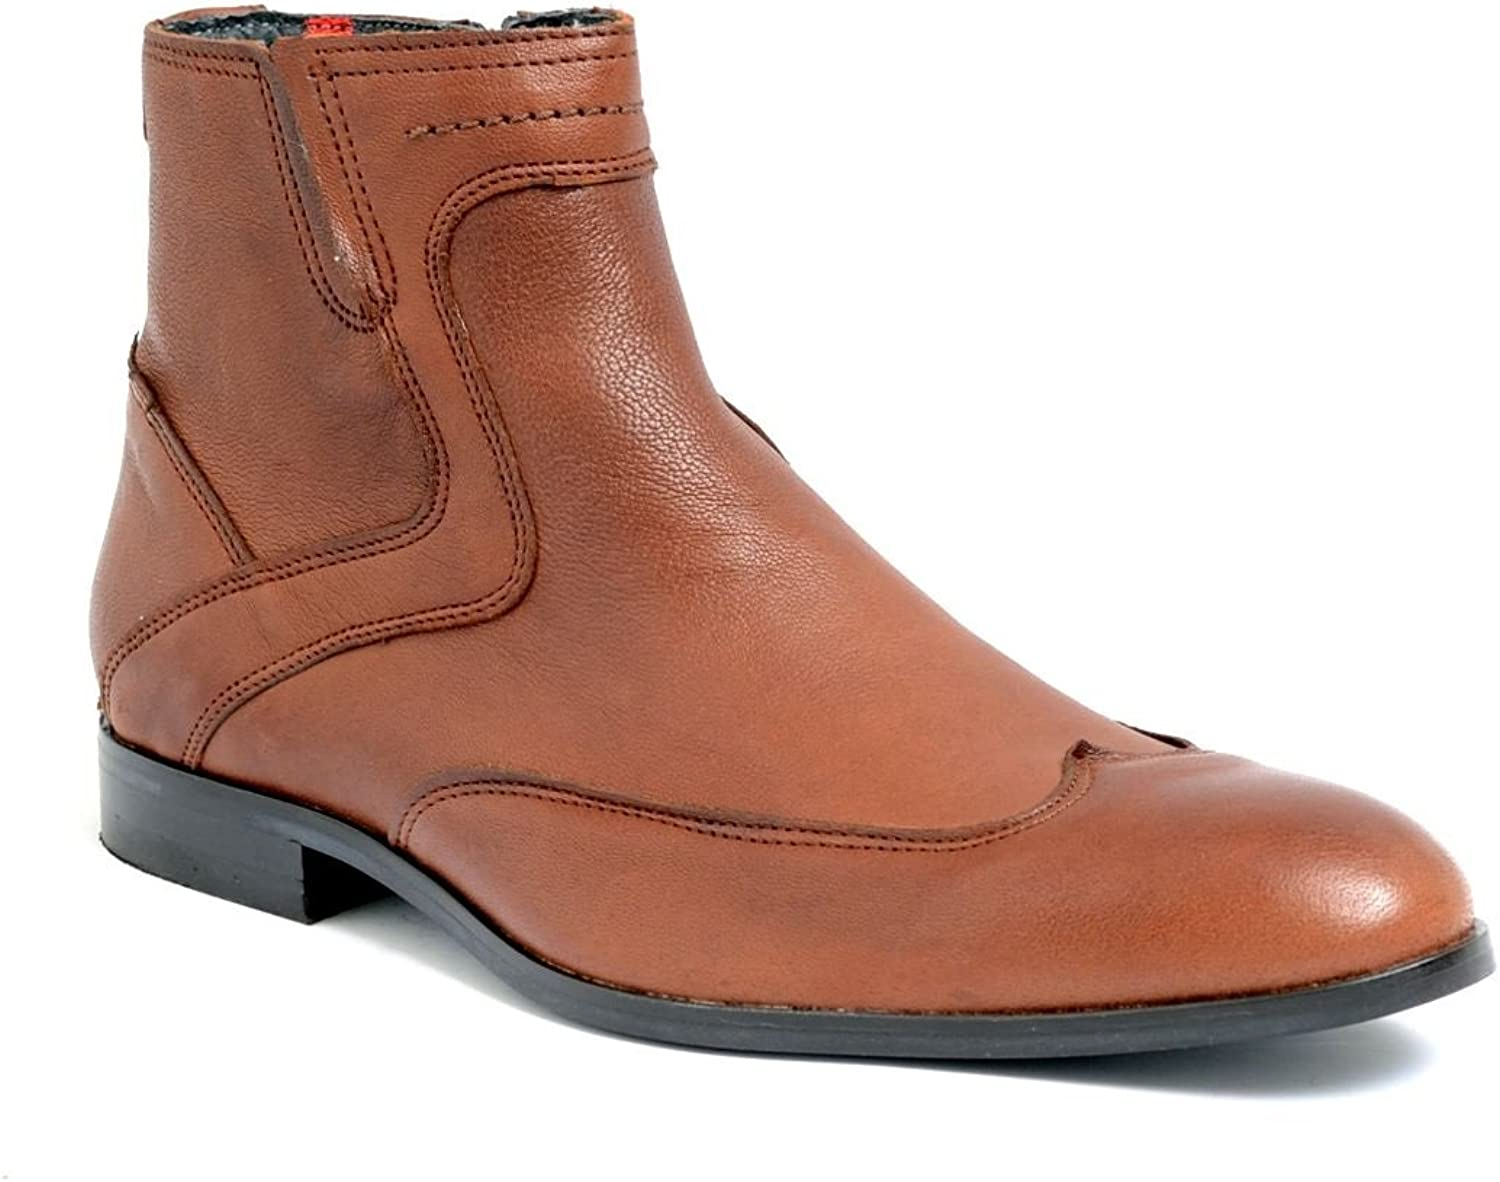 Men's PRATIK Maine Smart Chelsea Boots in Black and Tan Leather